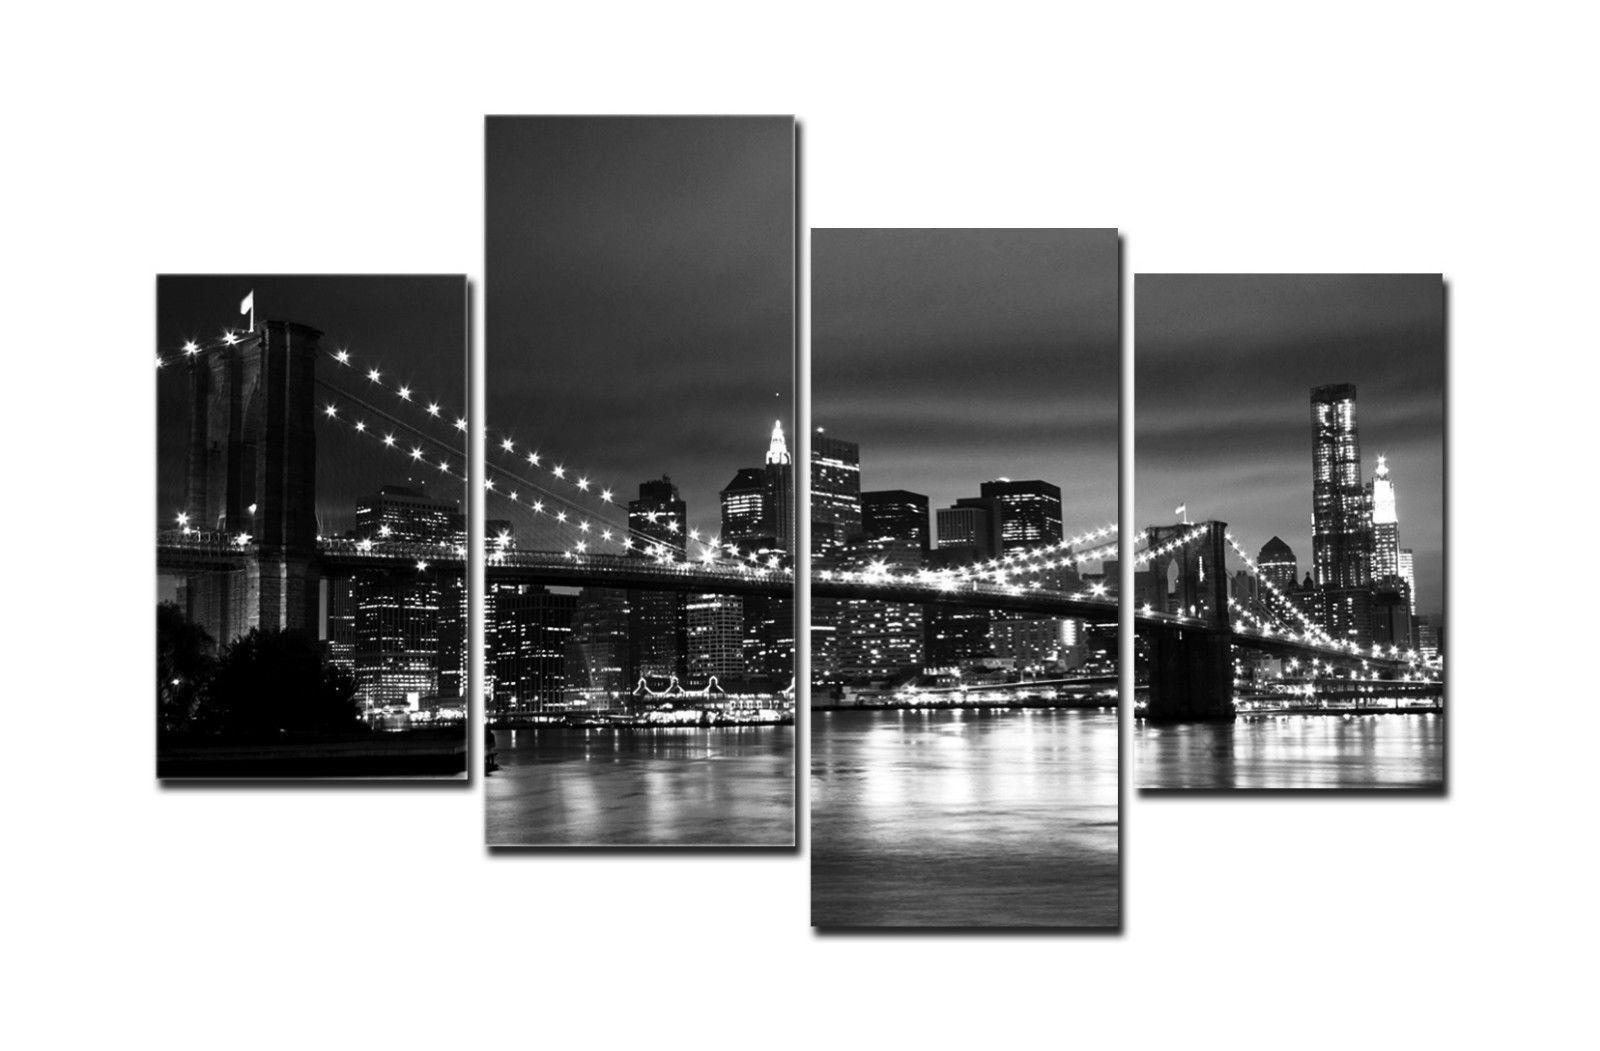 Hd Canvas Print Home Decor Wall Art Painting New York Bridge – No Regarding Recent Canvas Wall Art Of New York City (Gallery 11 of 15)